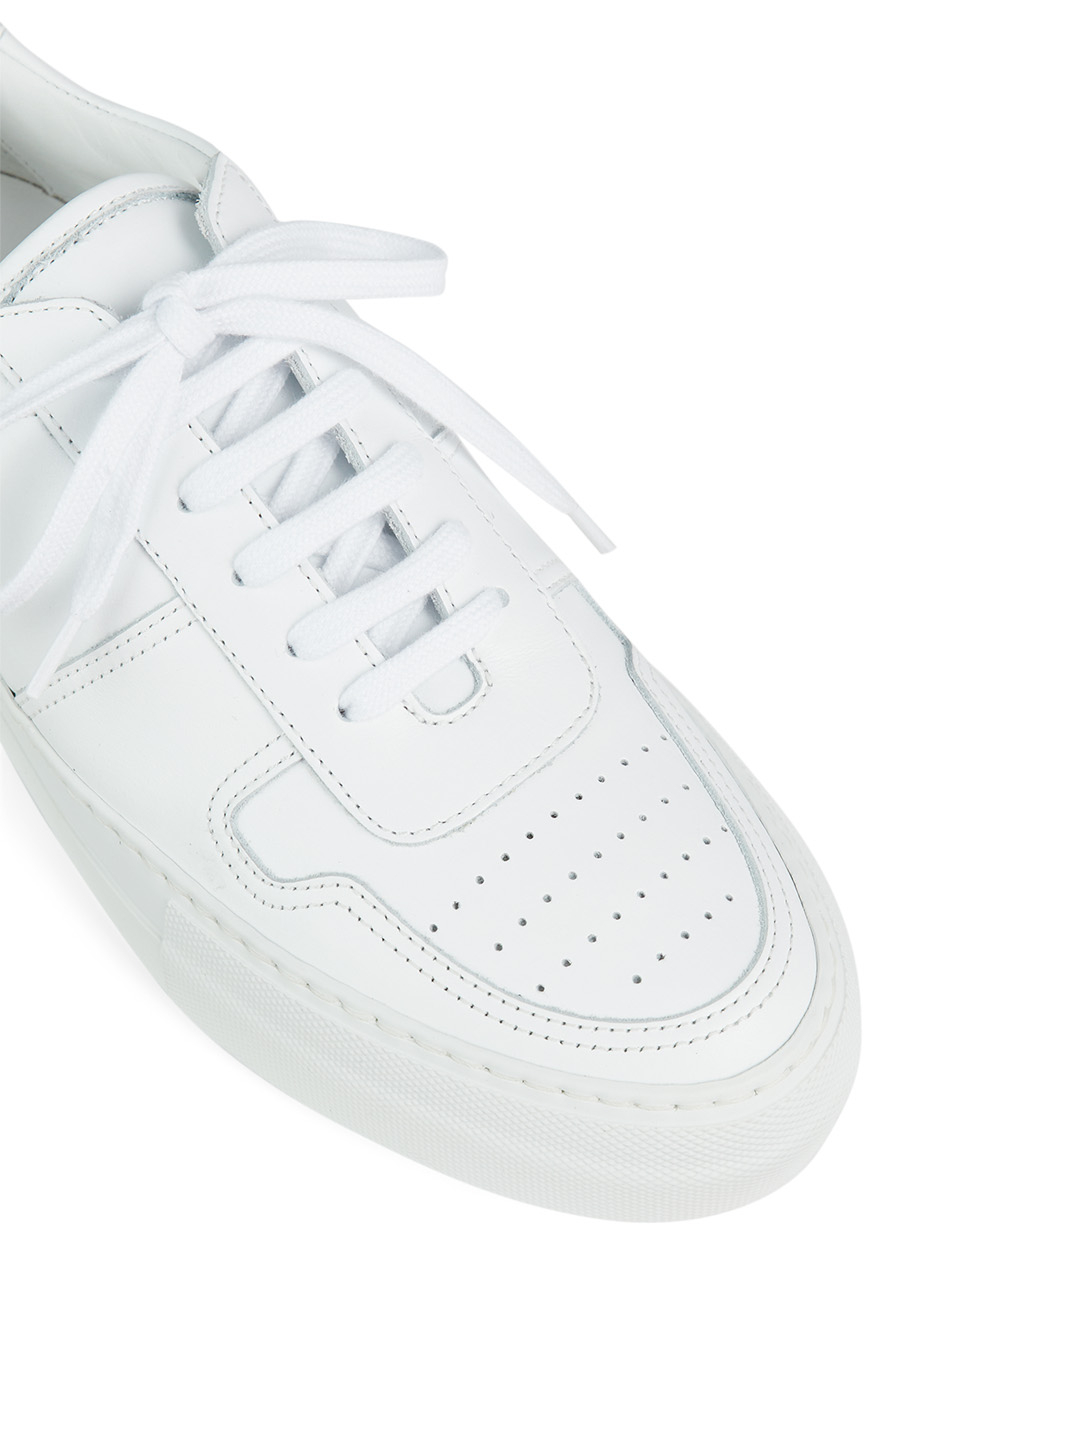 COMMON PROJECTS BBall Leather Super Sole Sneakers Women's White